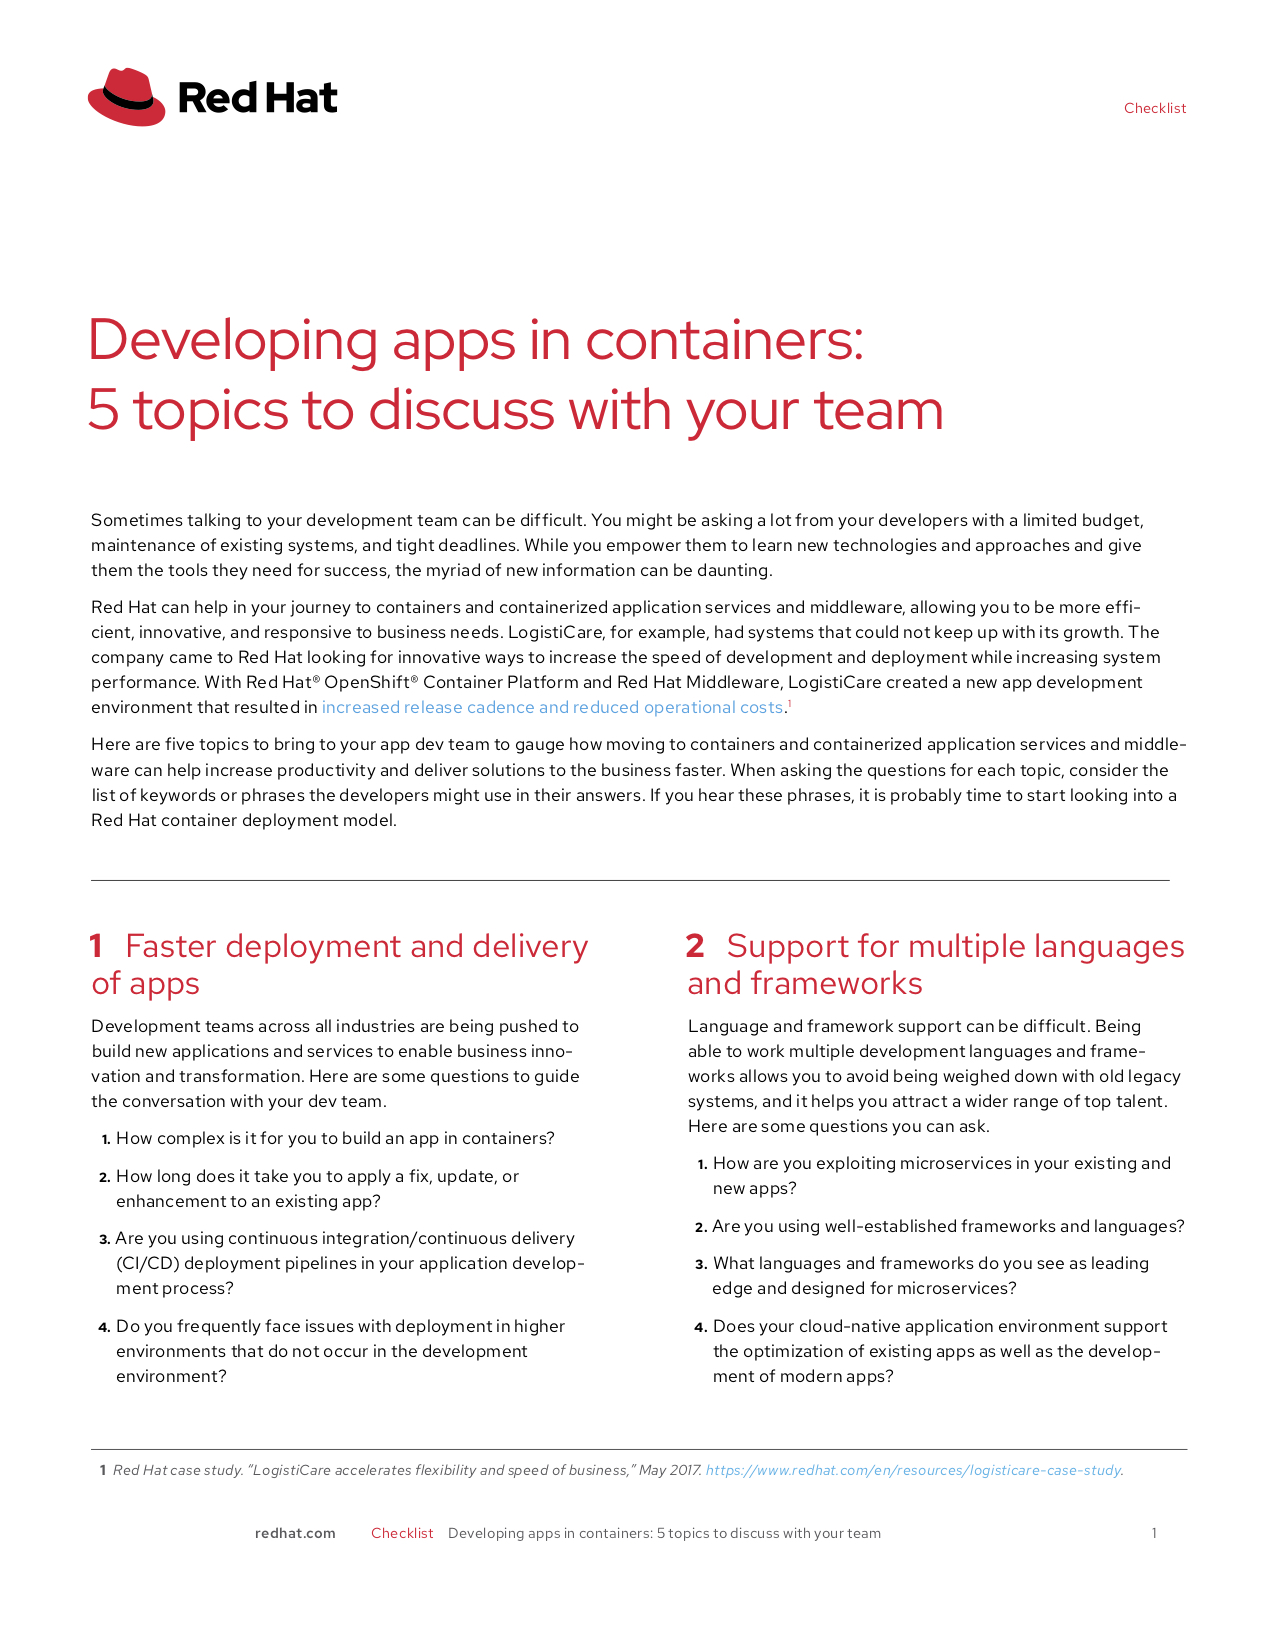 Developing Apps in Containers_cover